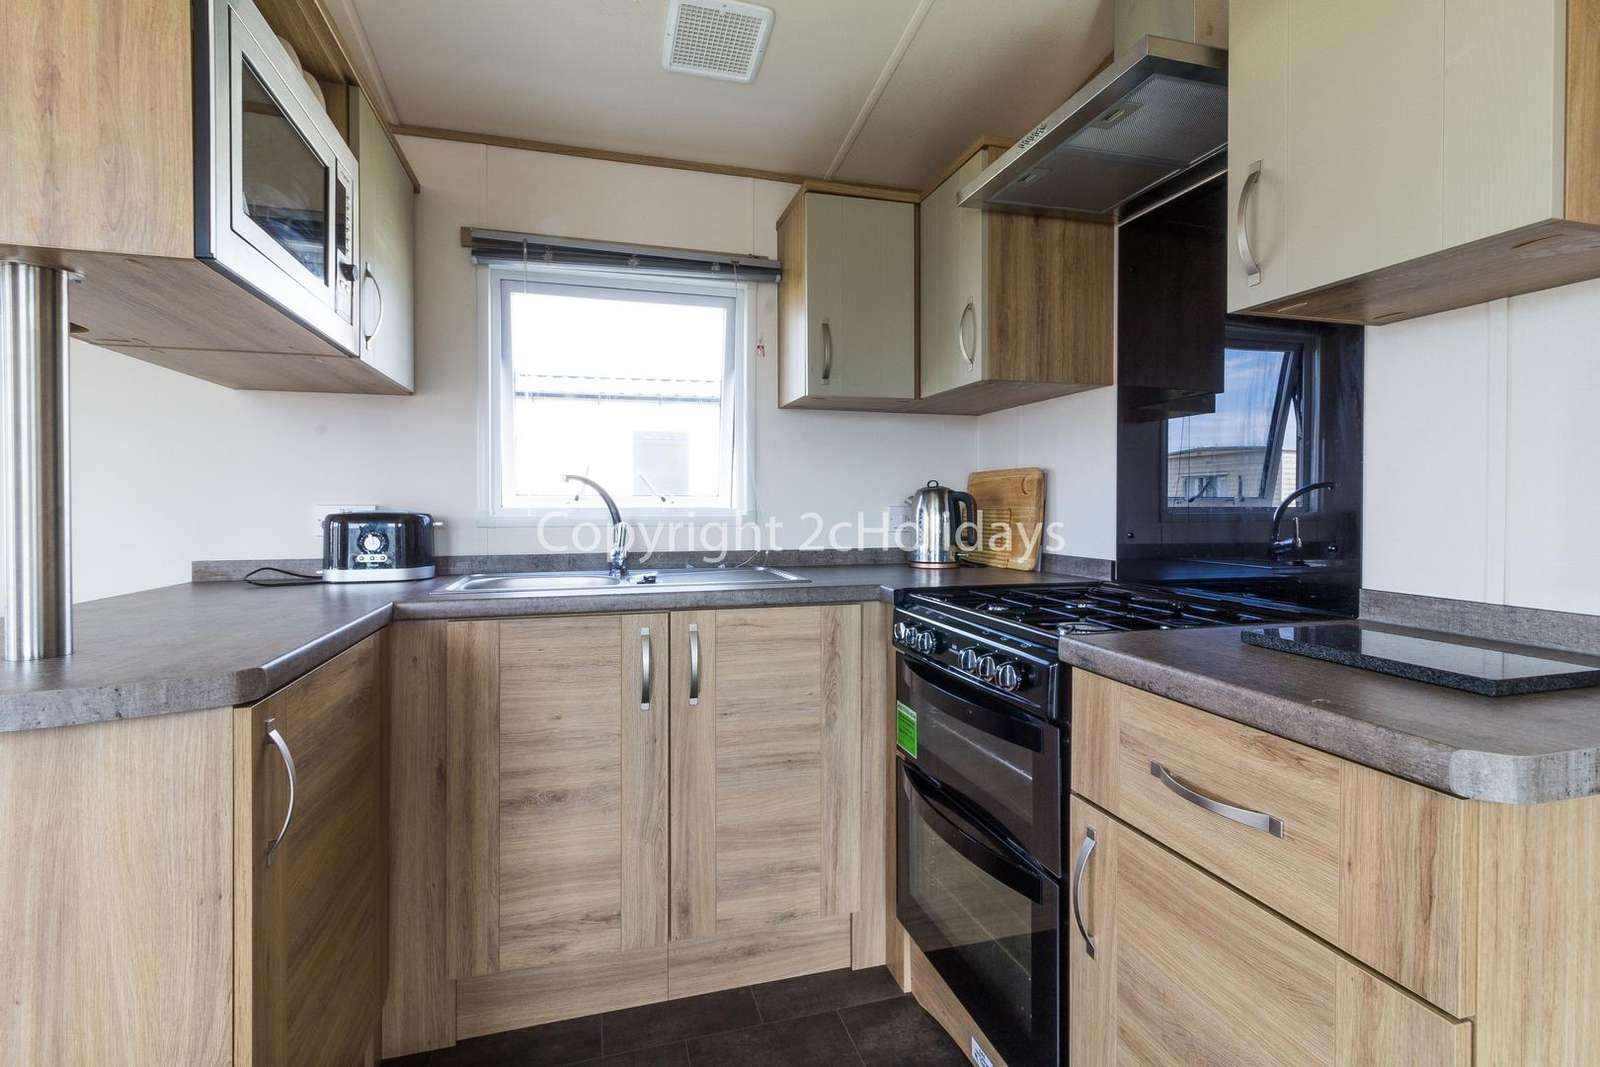 This kitchen comes with a full size oven and integrated fridge/freezer!